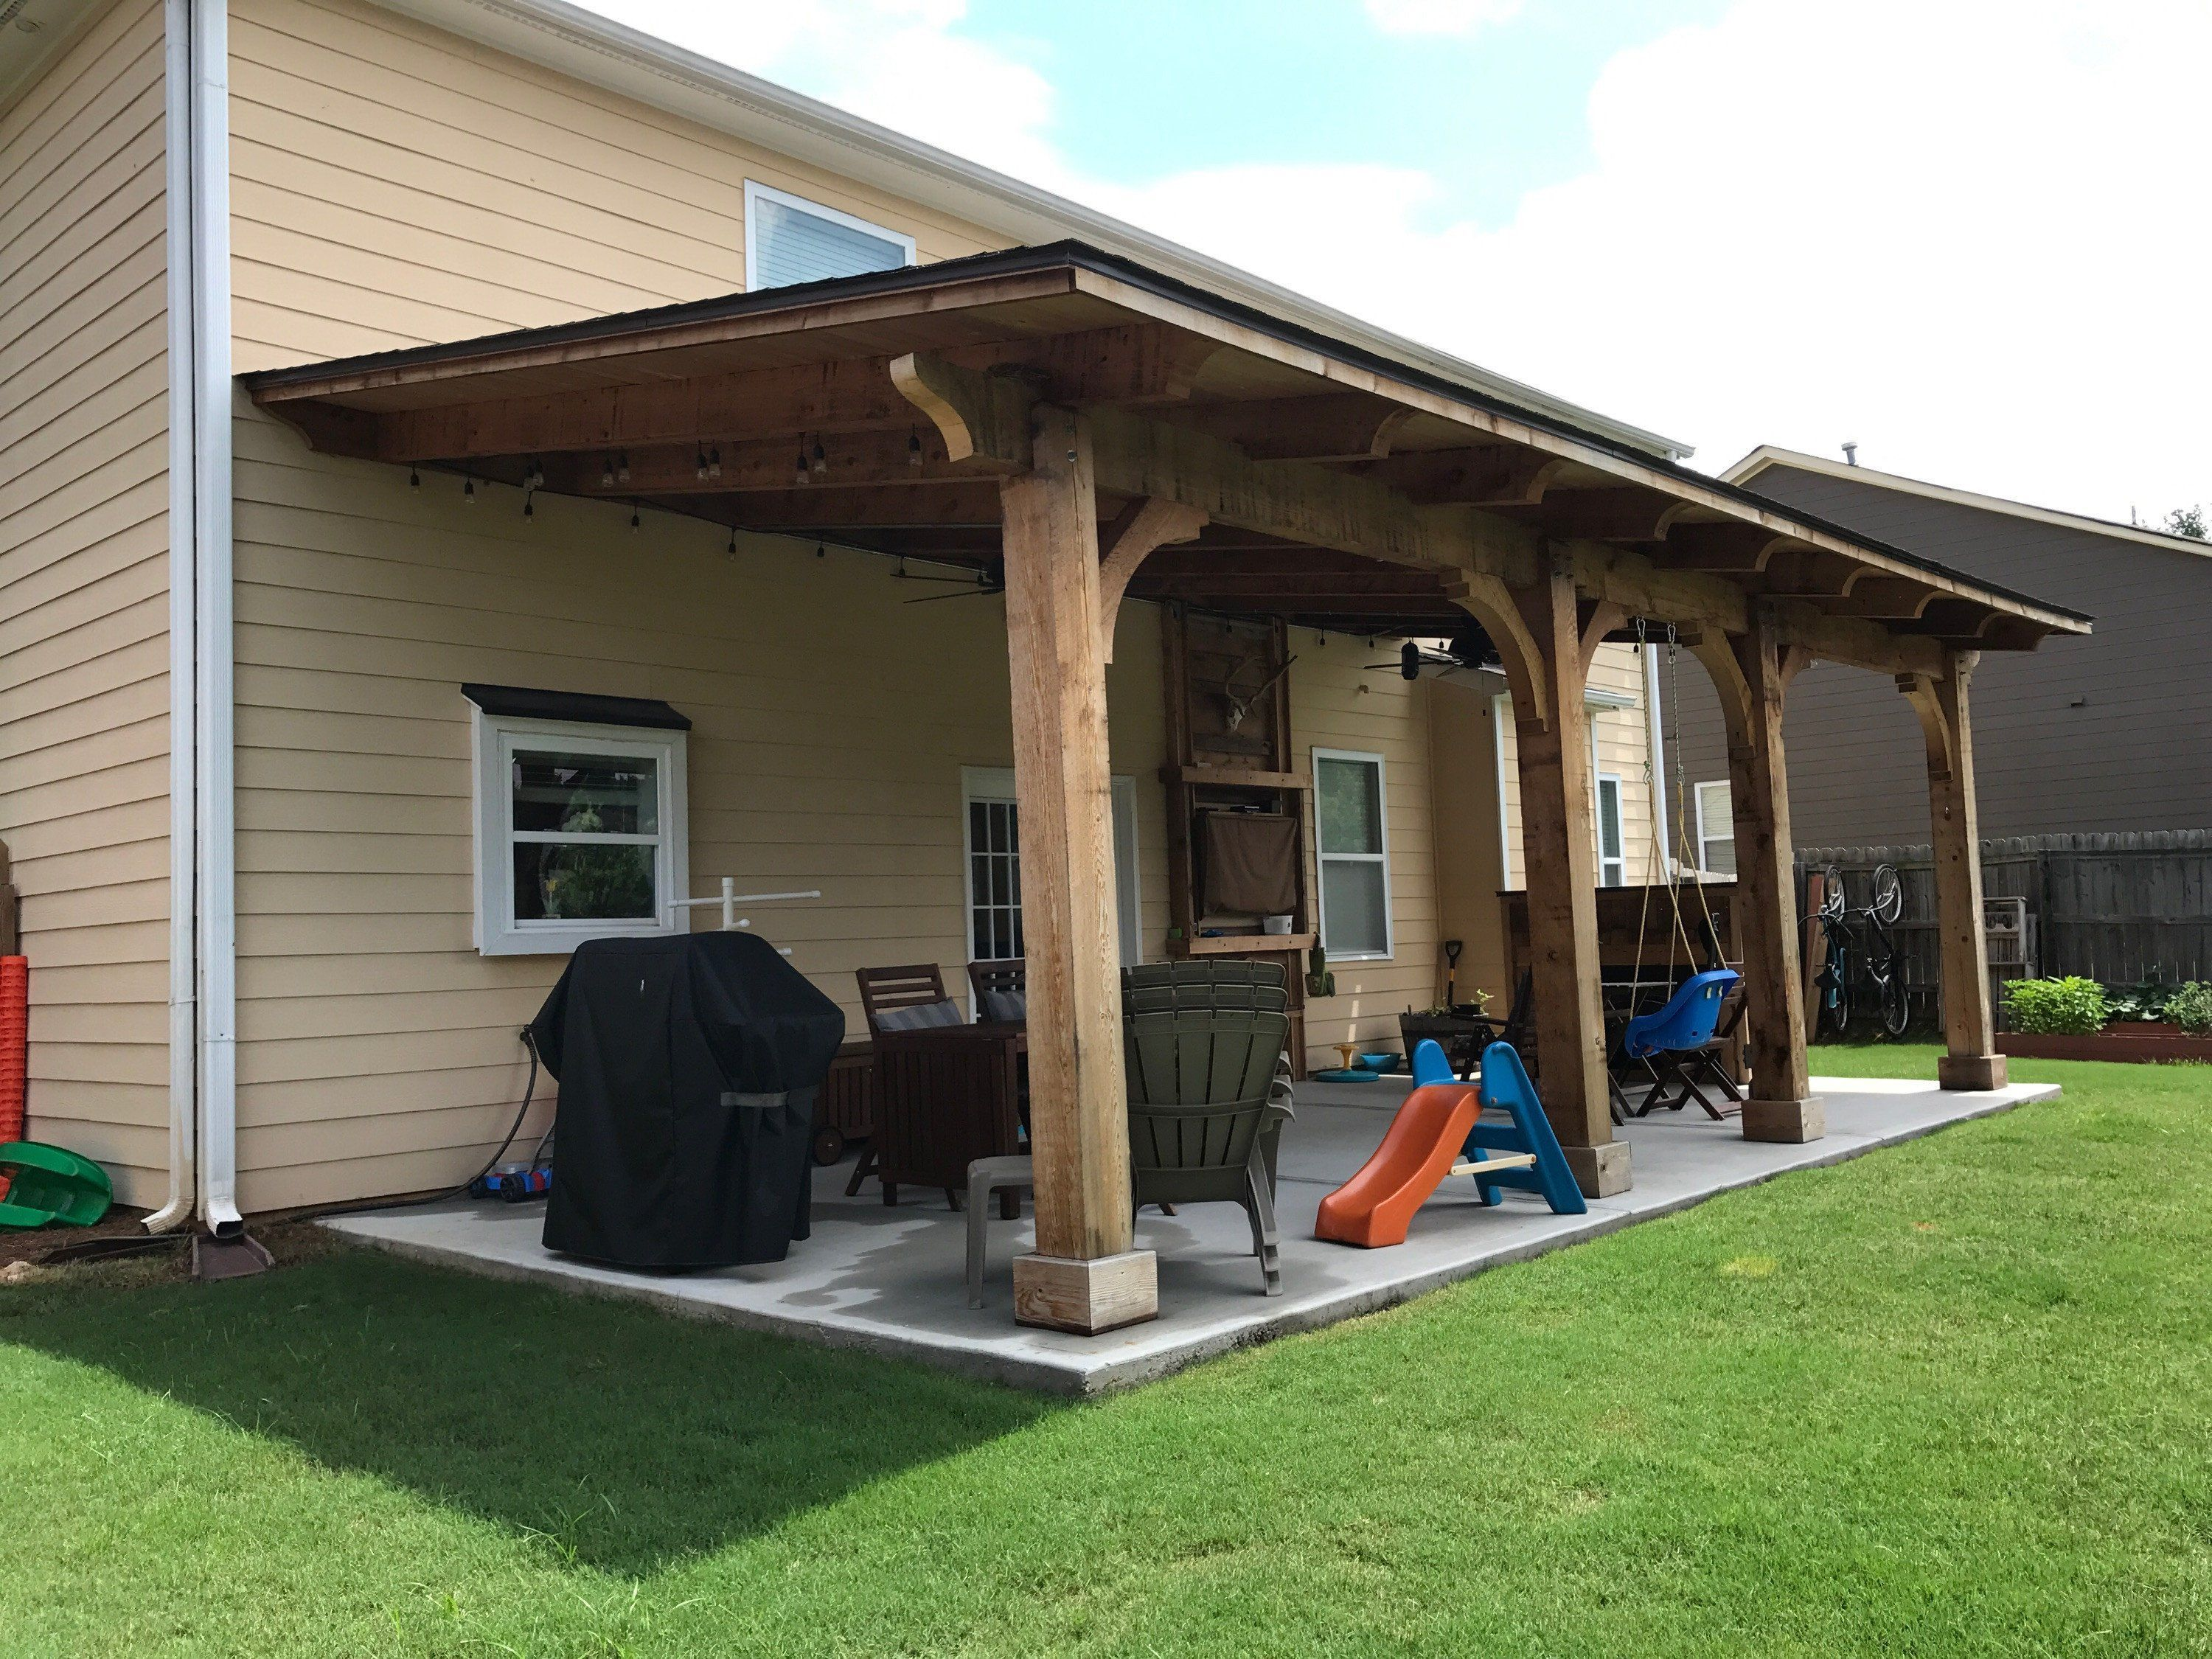 Let Lcg Customs Make Your Outdoor Space More Useable Rain Or Shine Roofing Not Included Recommended To Use Shingle Patio Design Outdoor Pergola Pergola Patio